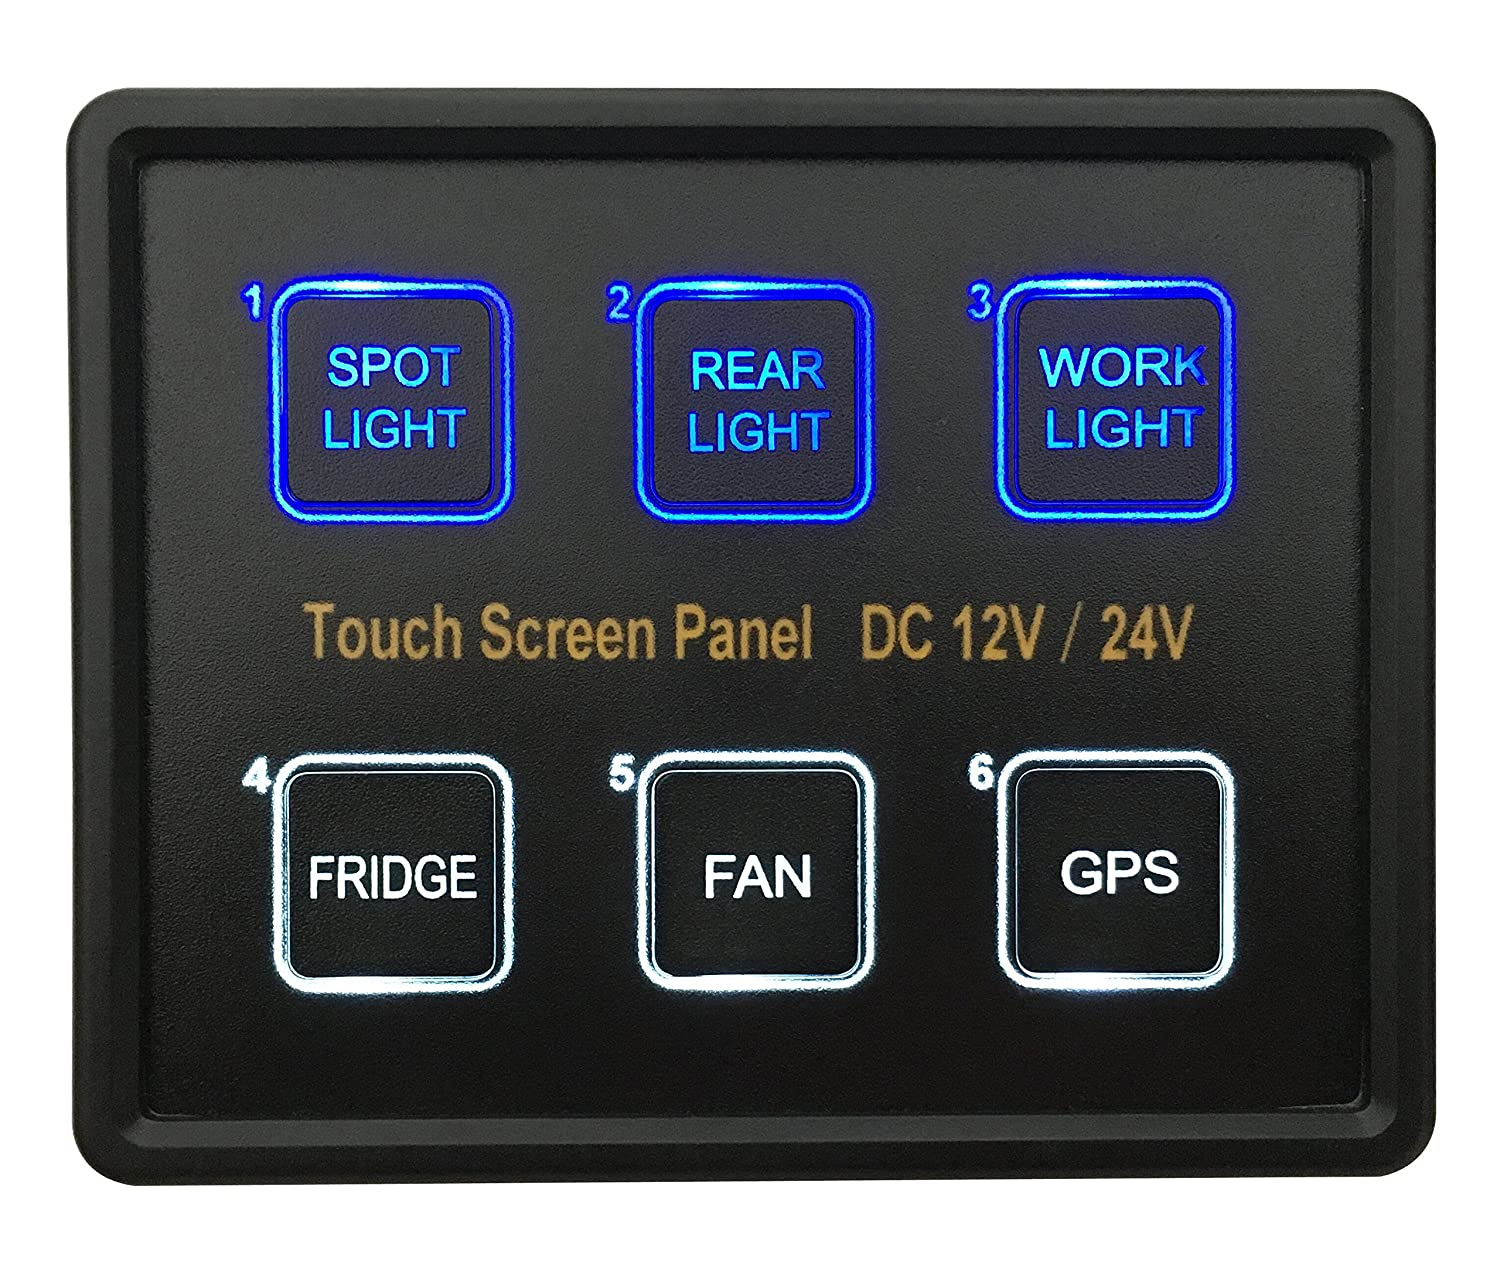 91sid25GWzL._SL1500_ bandc 12v 24v 6 gang blue led capacitive sense touch control panel m998 fuse box at aneh.co